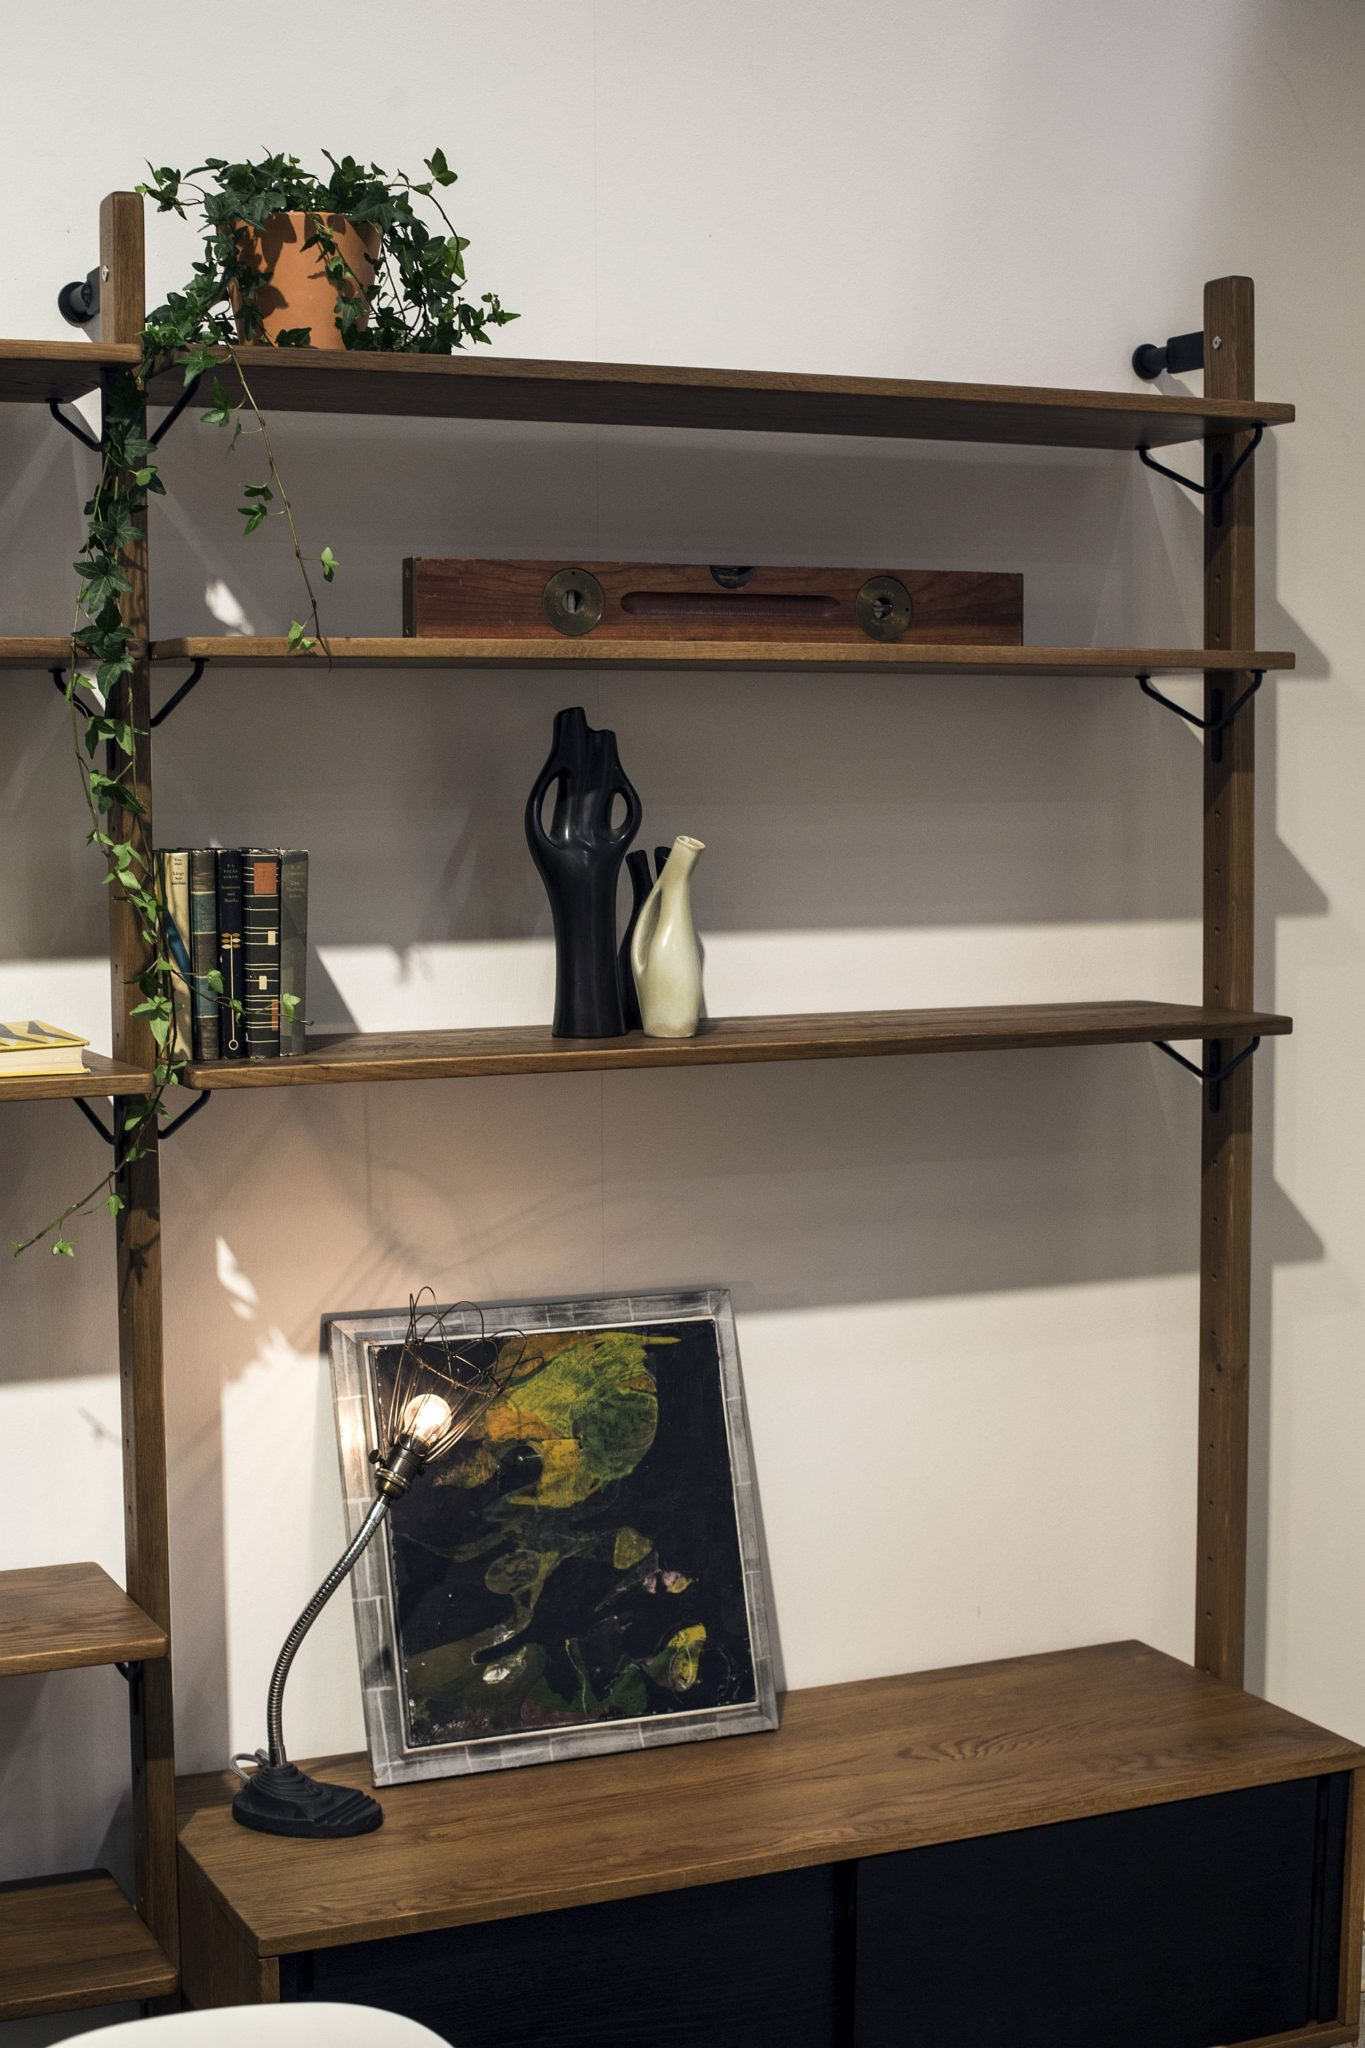 Space-savvy floating shelves add industrial charm to the modern living room